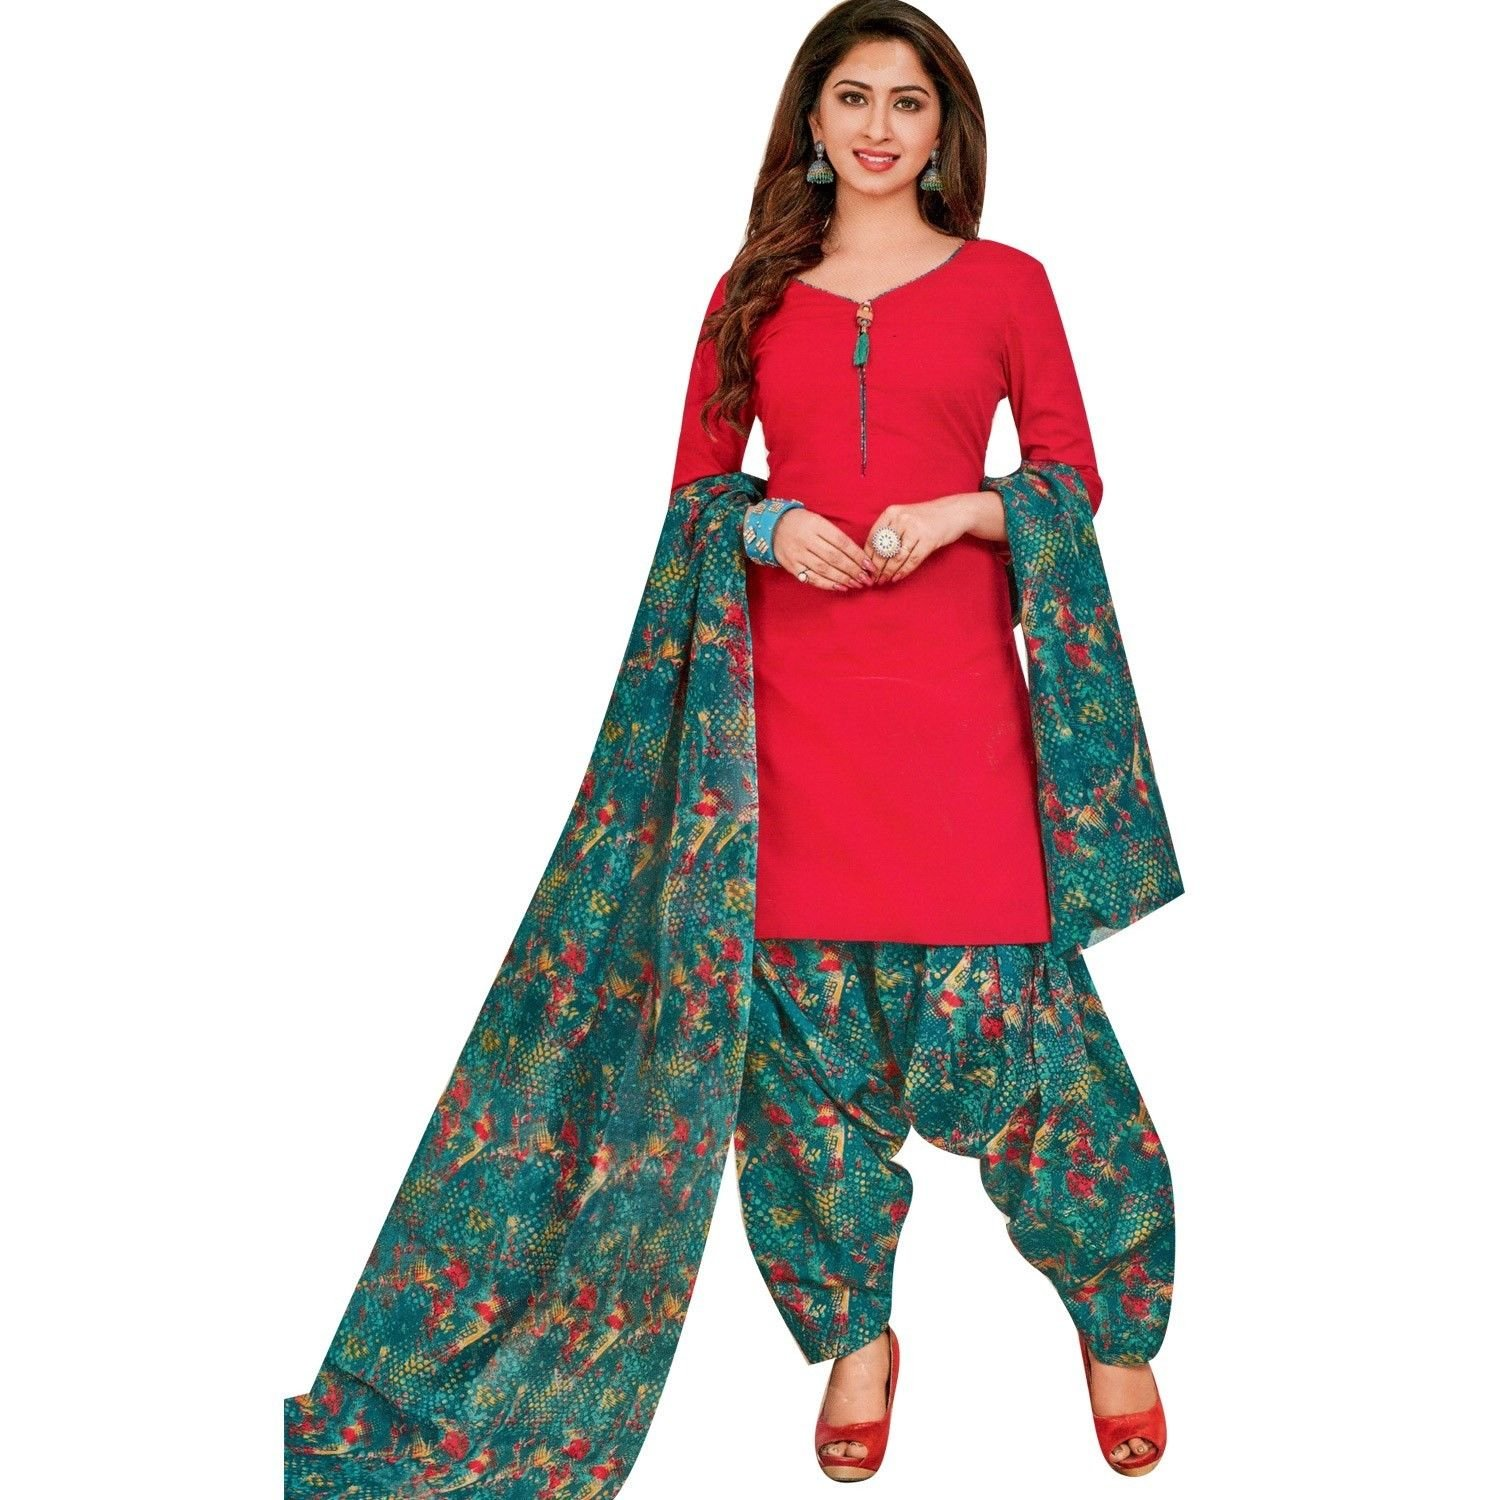 6d55ce216f Ready to wear Cotton Printed with Patiala Salwar Kameez Indian Ethnic  Pakistani Salwar Suit Readymade at Amazon Women's Clothing store: